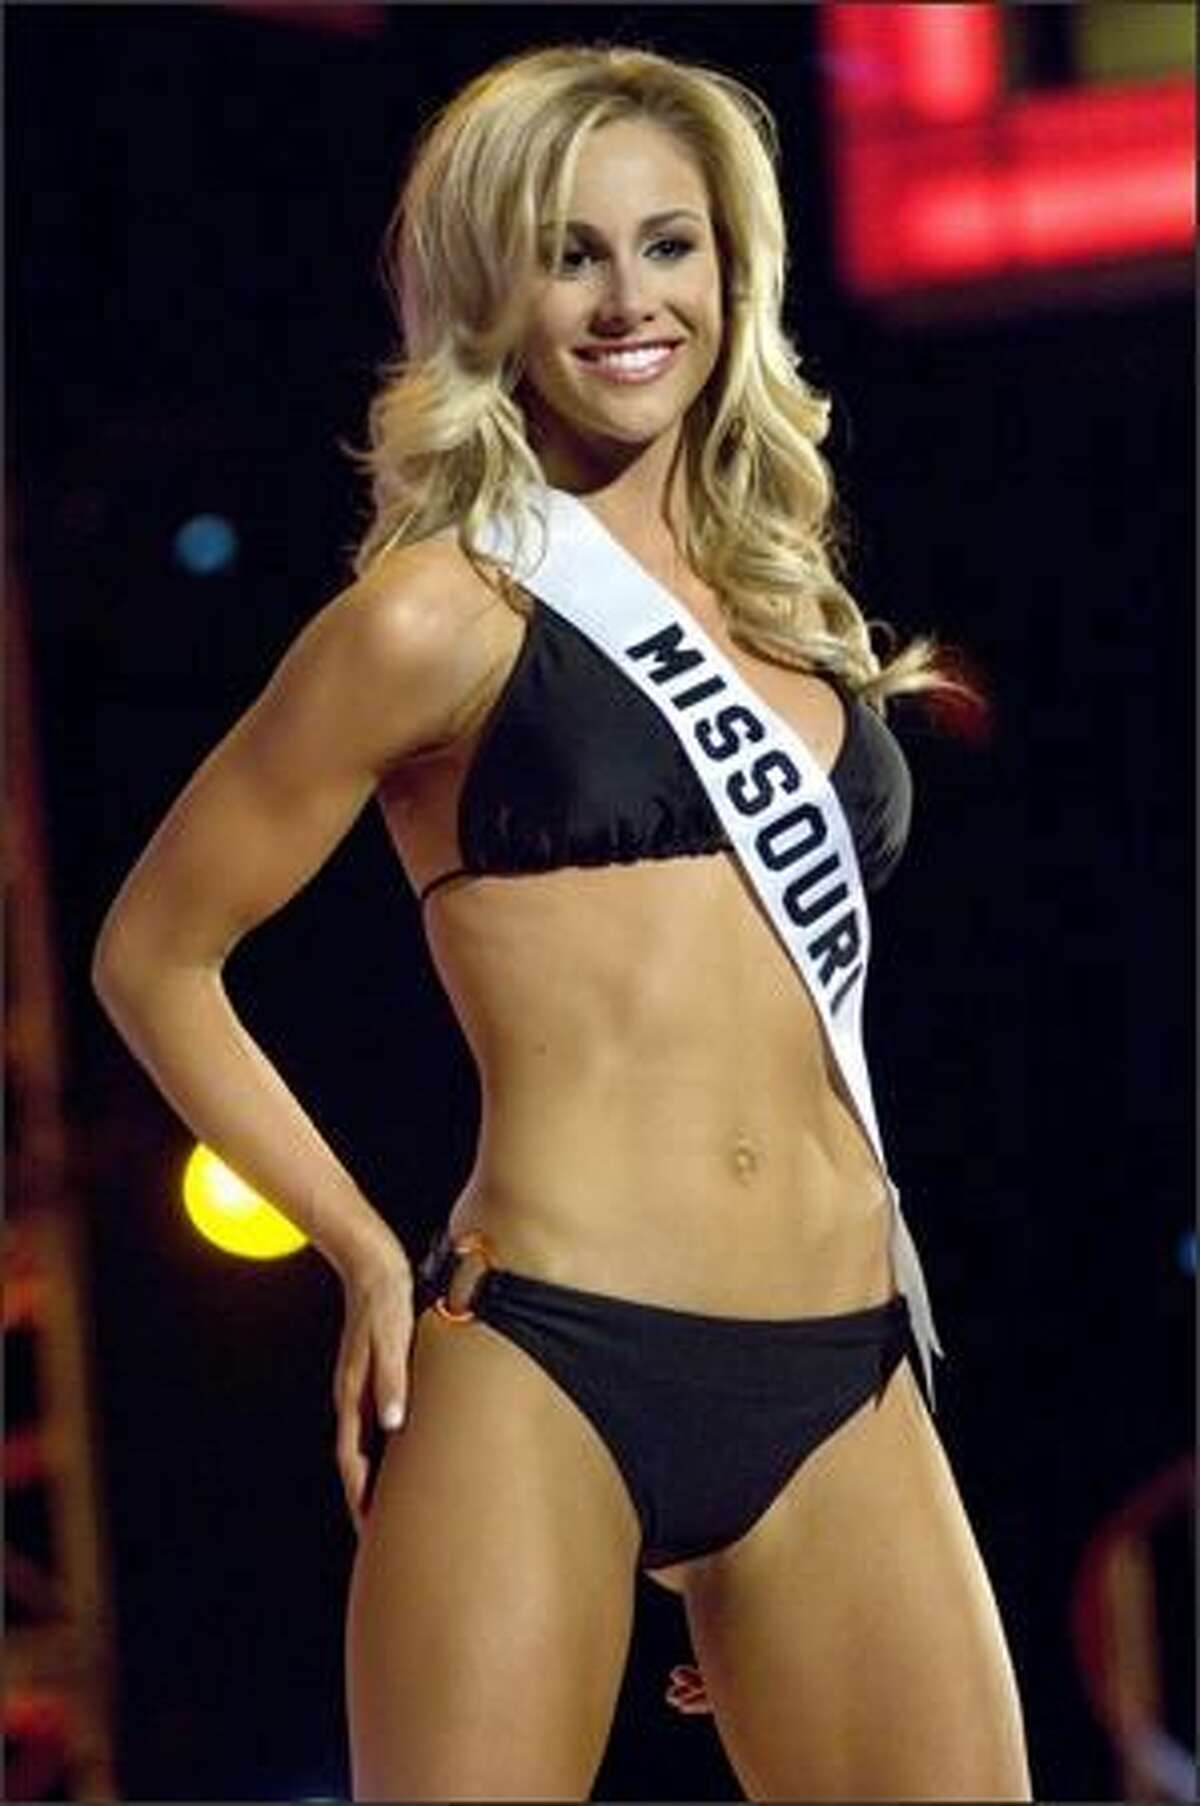 Candice Crawford, Miss Missouri USA 2008. Photo: Miss Universe L.P., LLLP